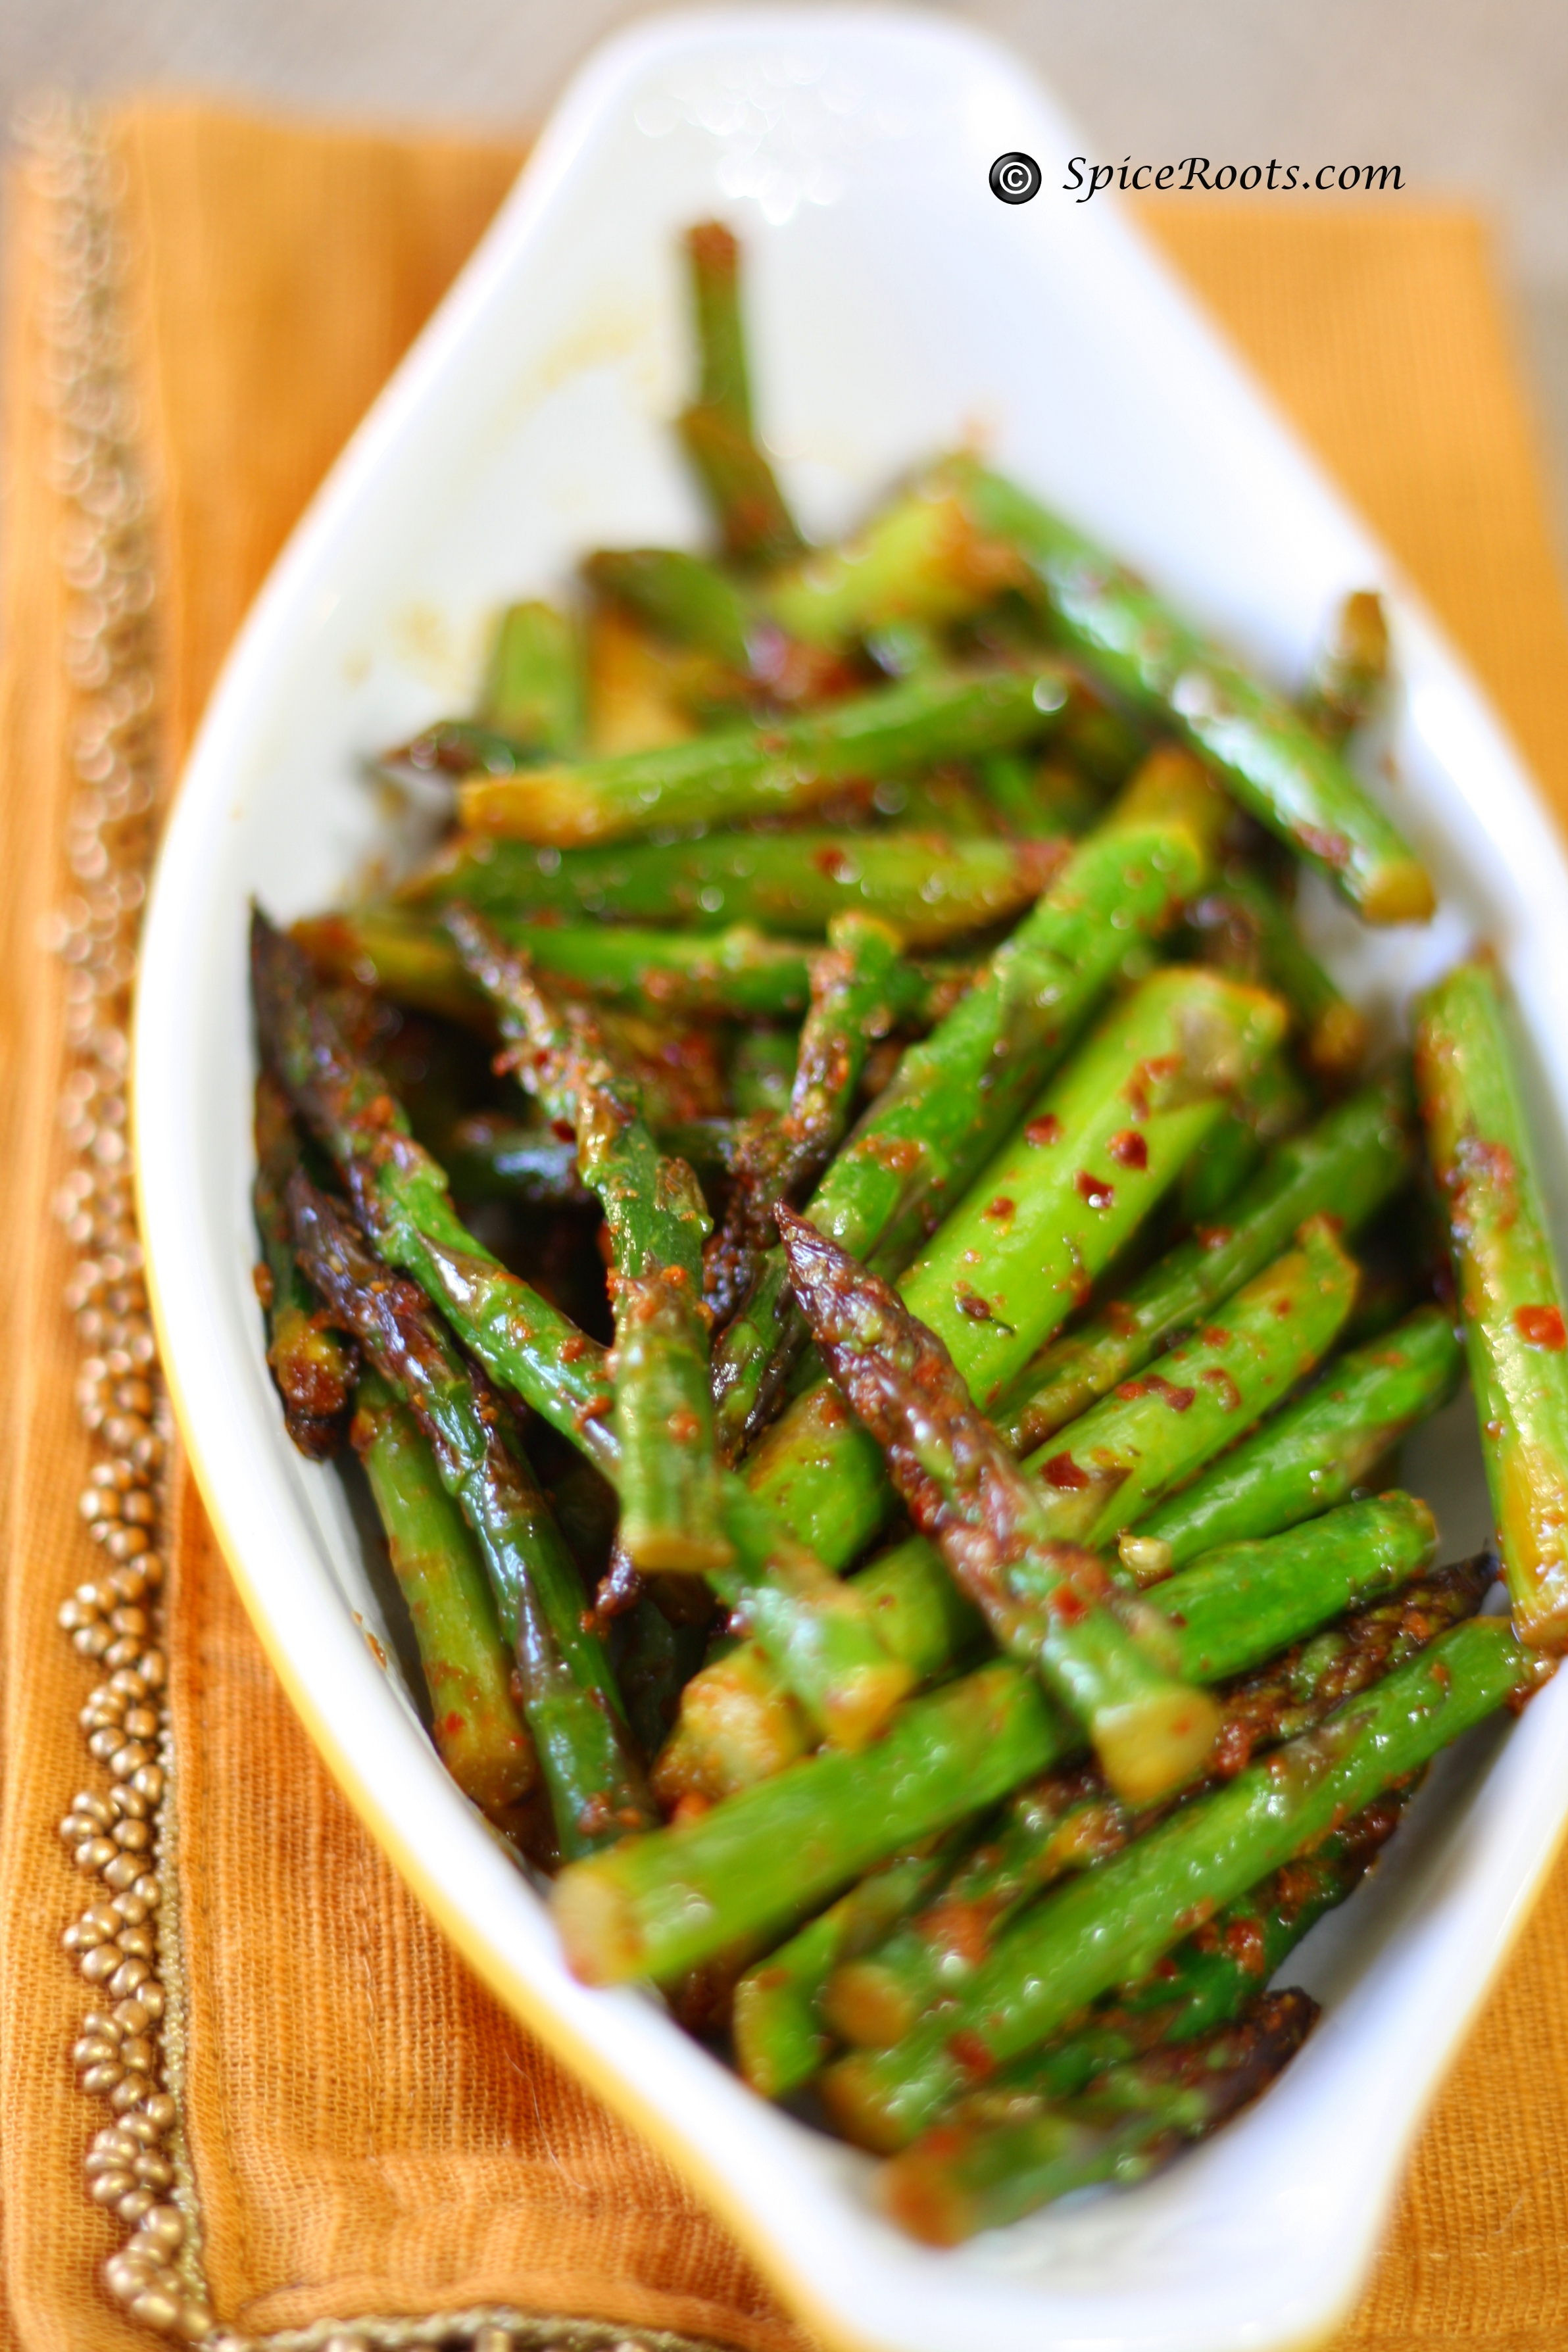 Healthy Asparagus Recipes  Stir Fry Asparagus Indian Style